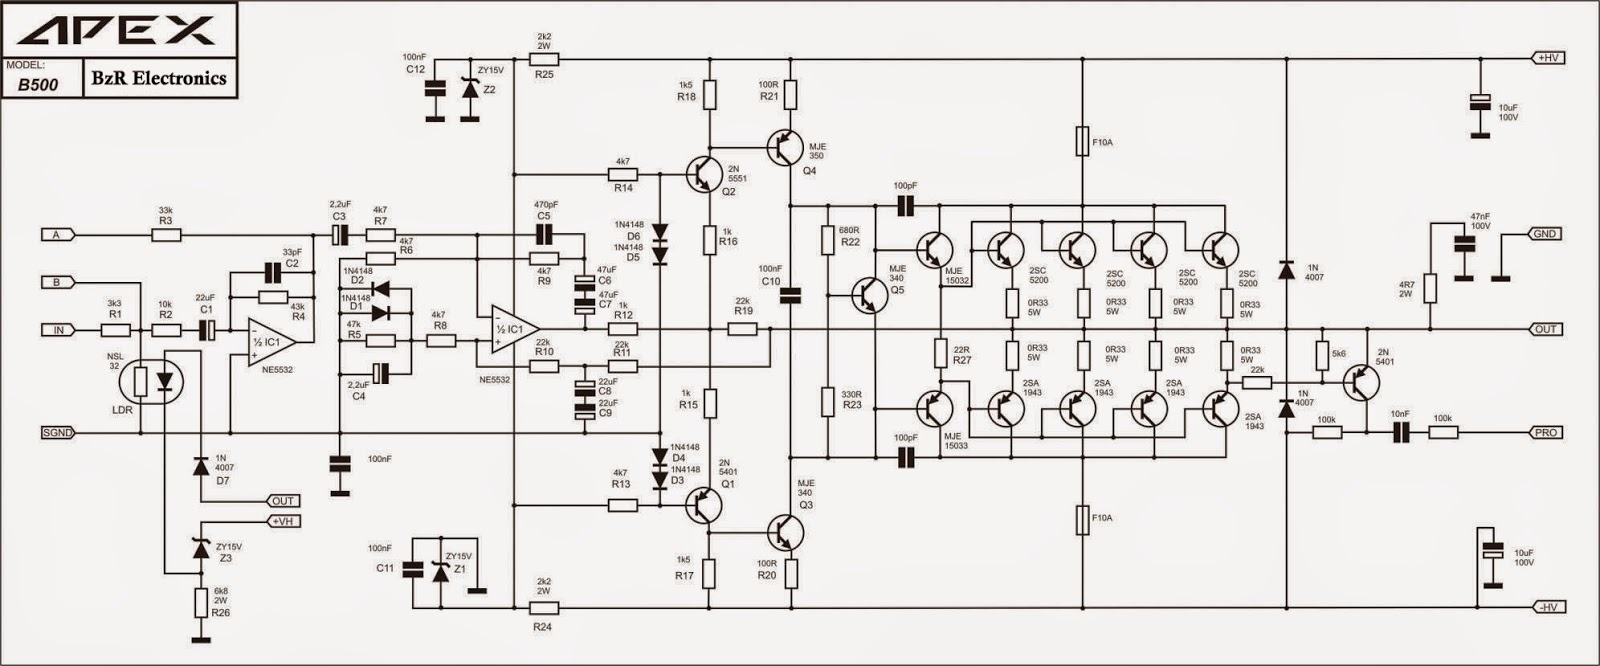 schematic circuit forward amplifier  [ 1600 x 666 Pixel ]